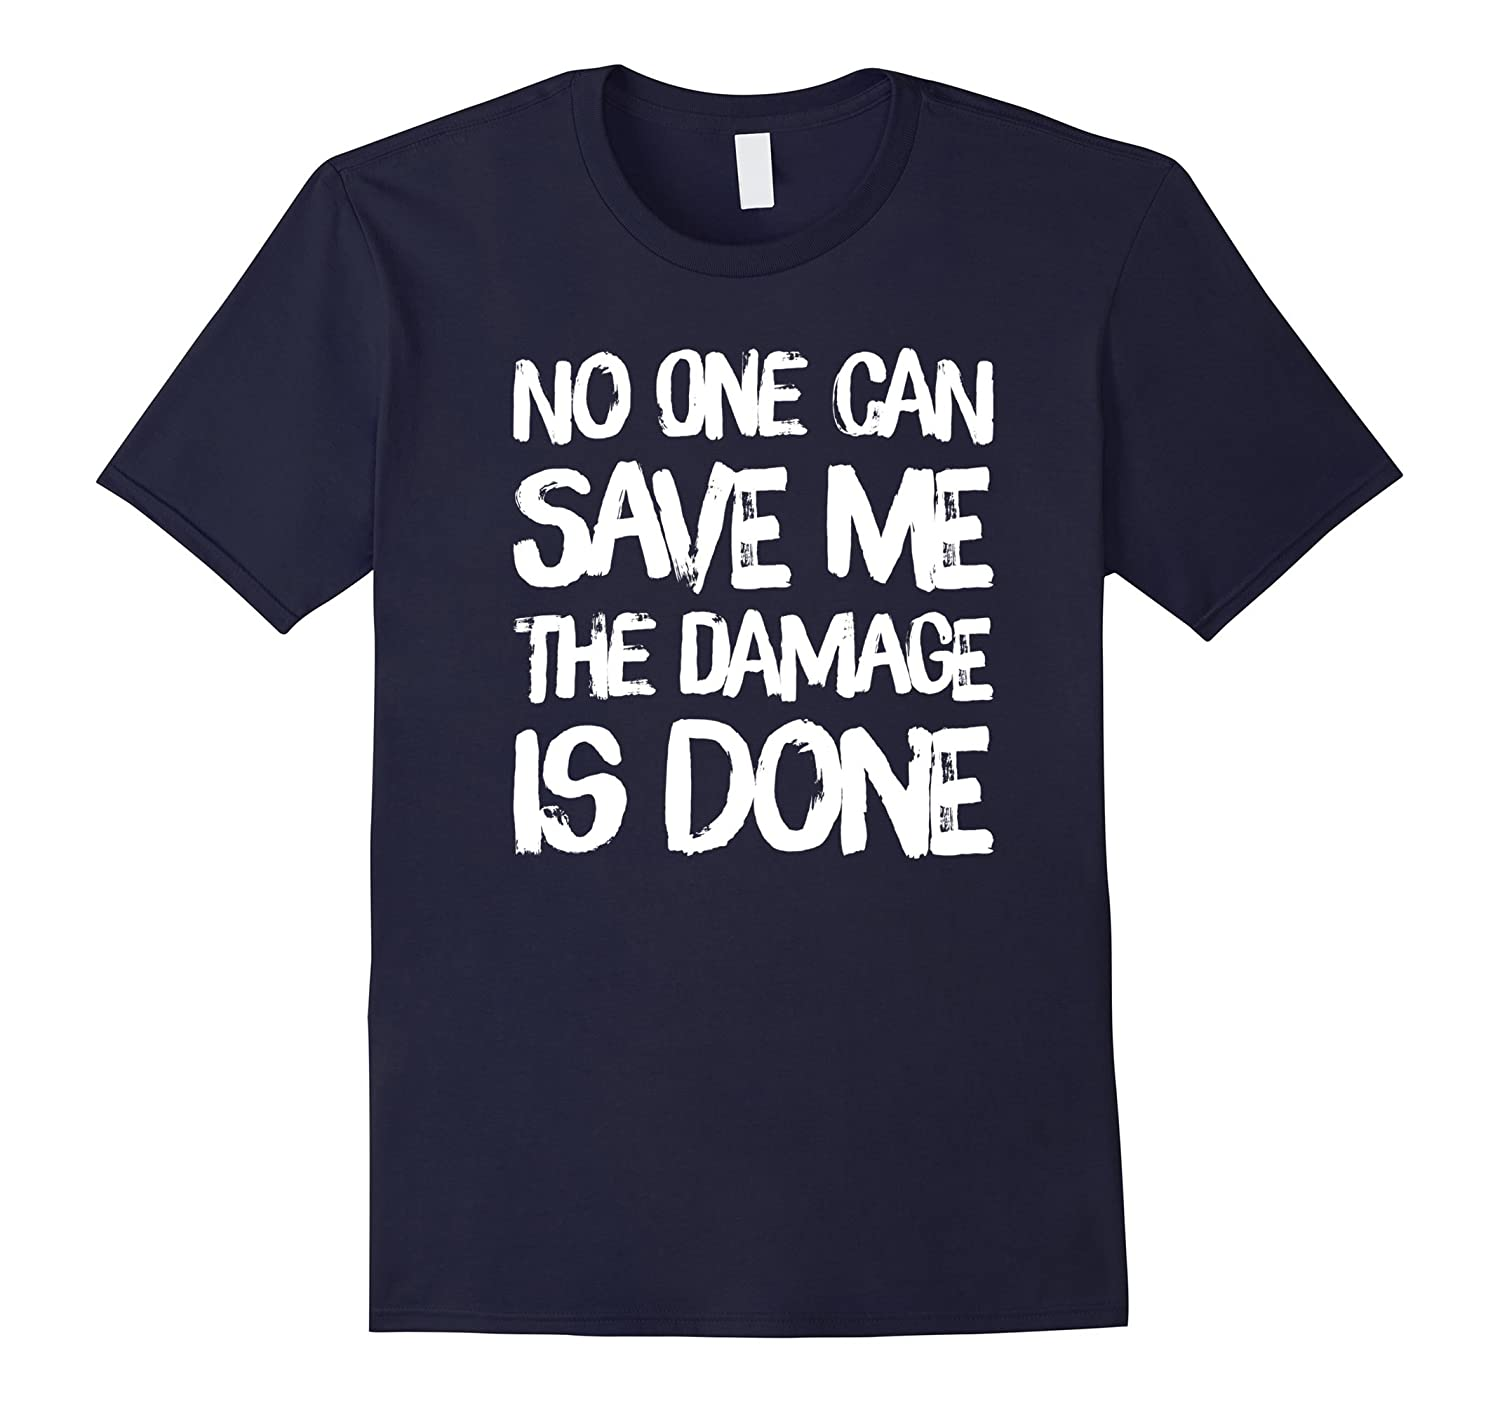 80s Shirts Damage Shirt Black-Awarplus